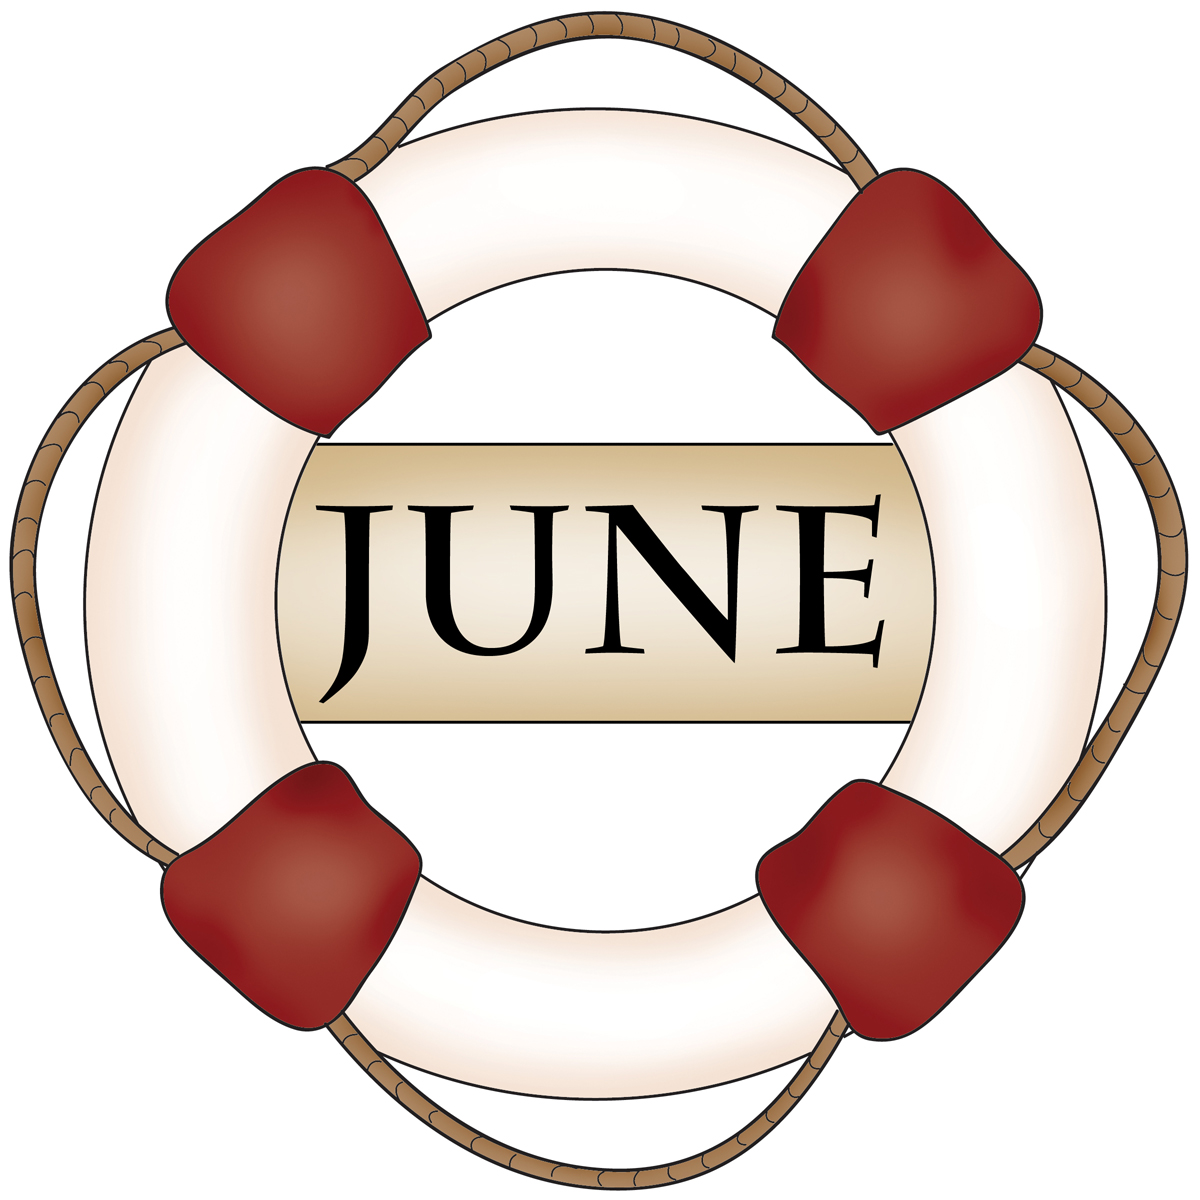 Month june clipart banner black and white download Month of June Clip Art – Clipart Free Download banner black and white download